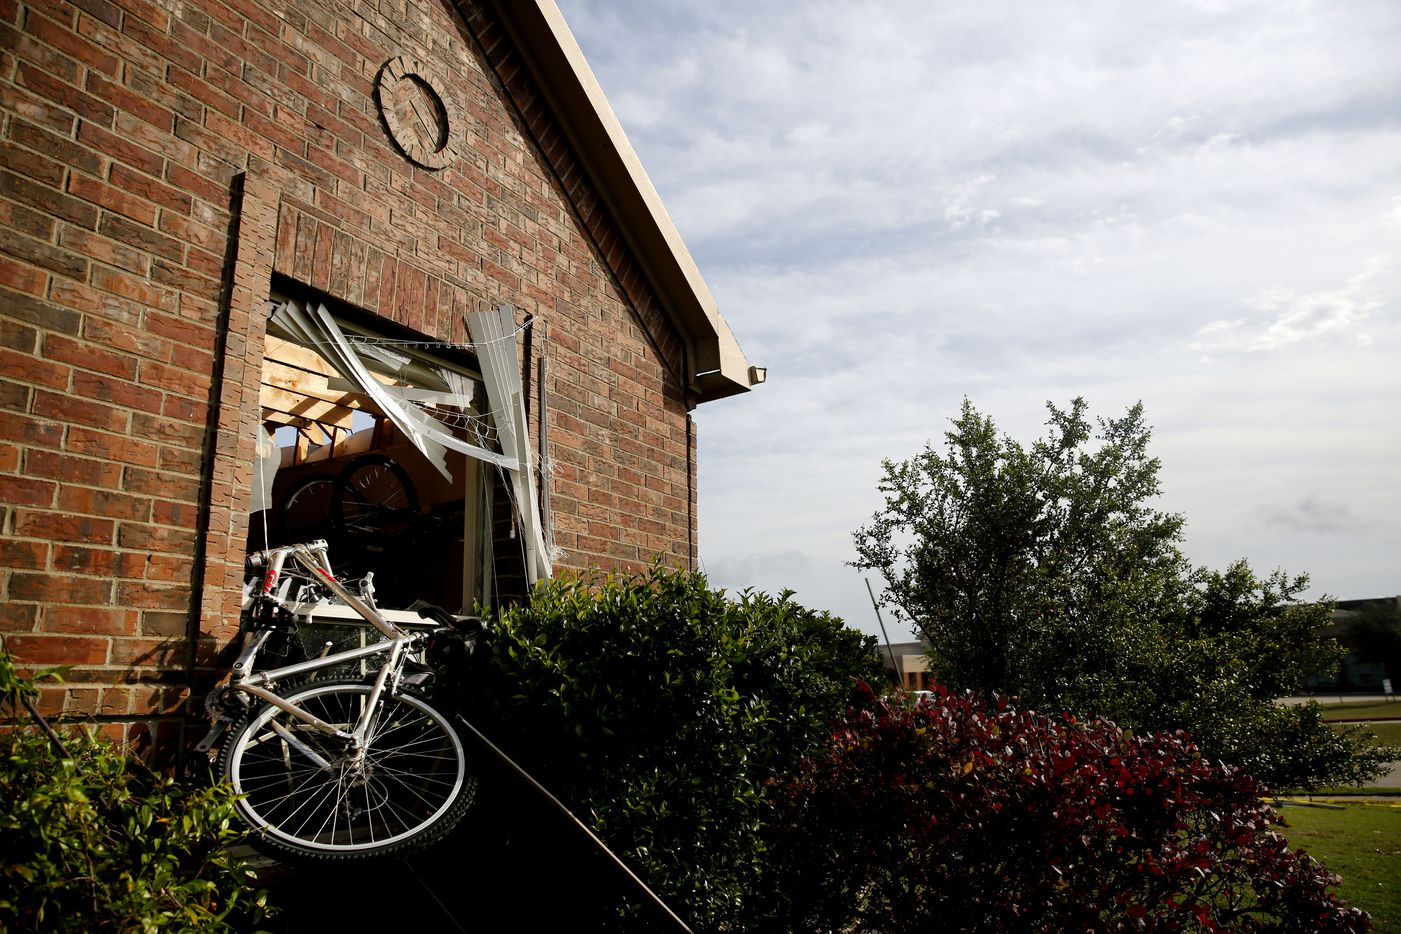 A bicycle was blown through the garage window of Michael Hampton's home along Tumbleweed Circle following a storm in the early hours of the morning in Rockwall, Texas on Wednesday, March 29, 2017. (Rose Baca/The Dallas Morning News)